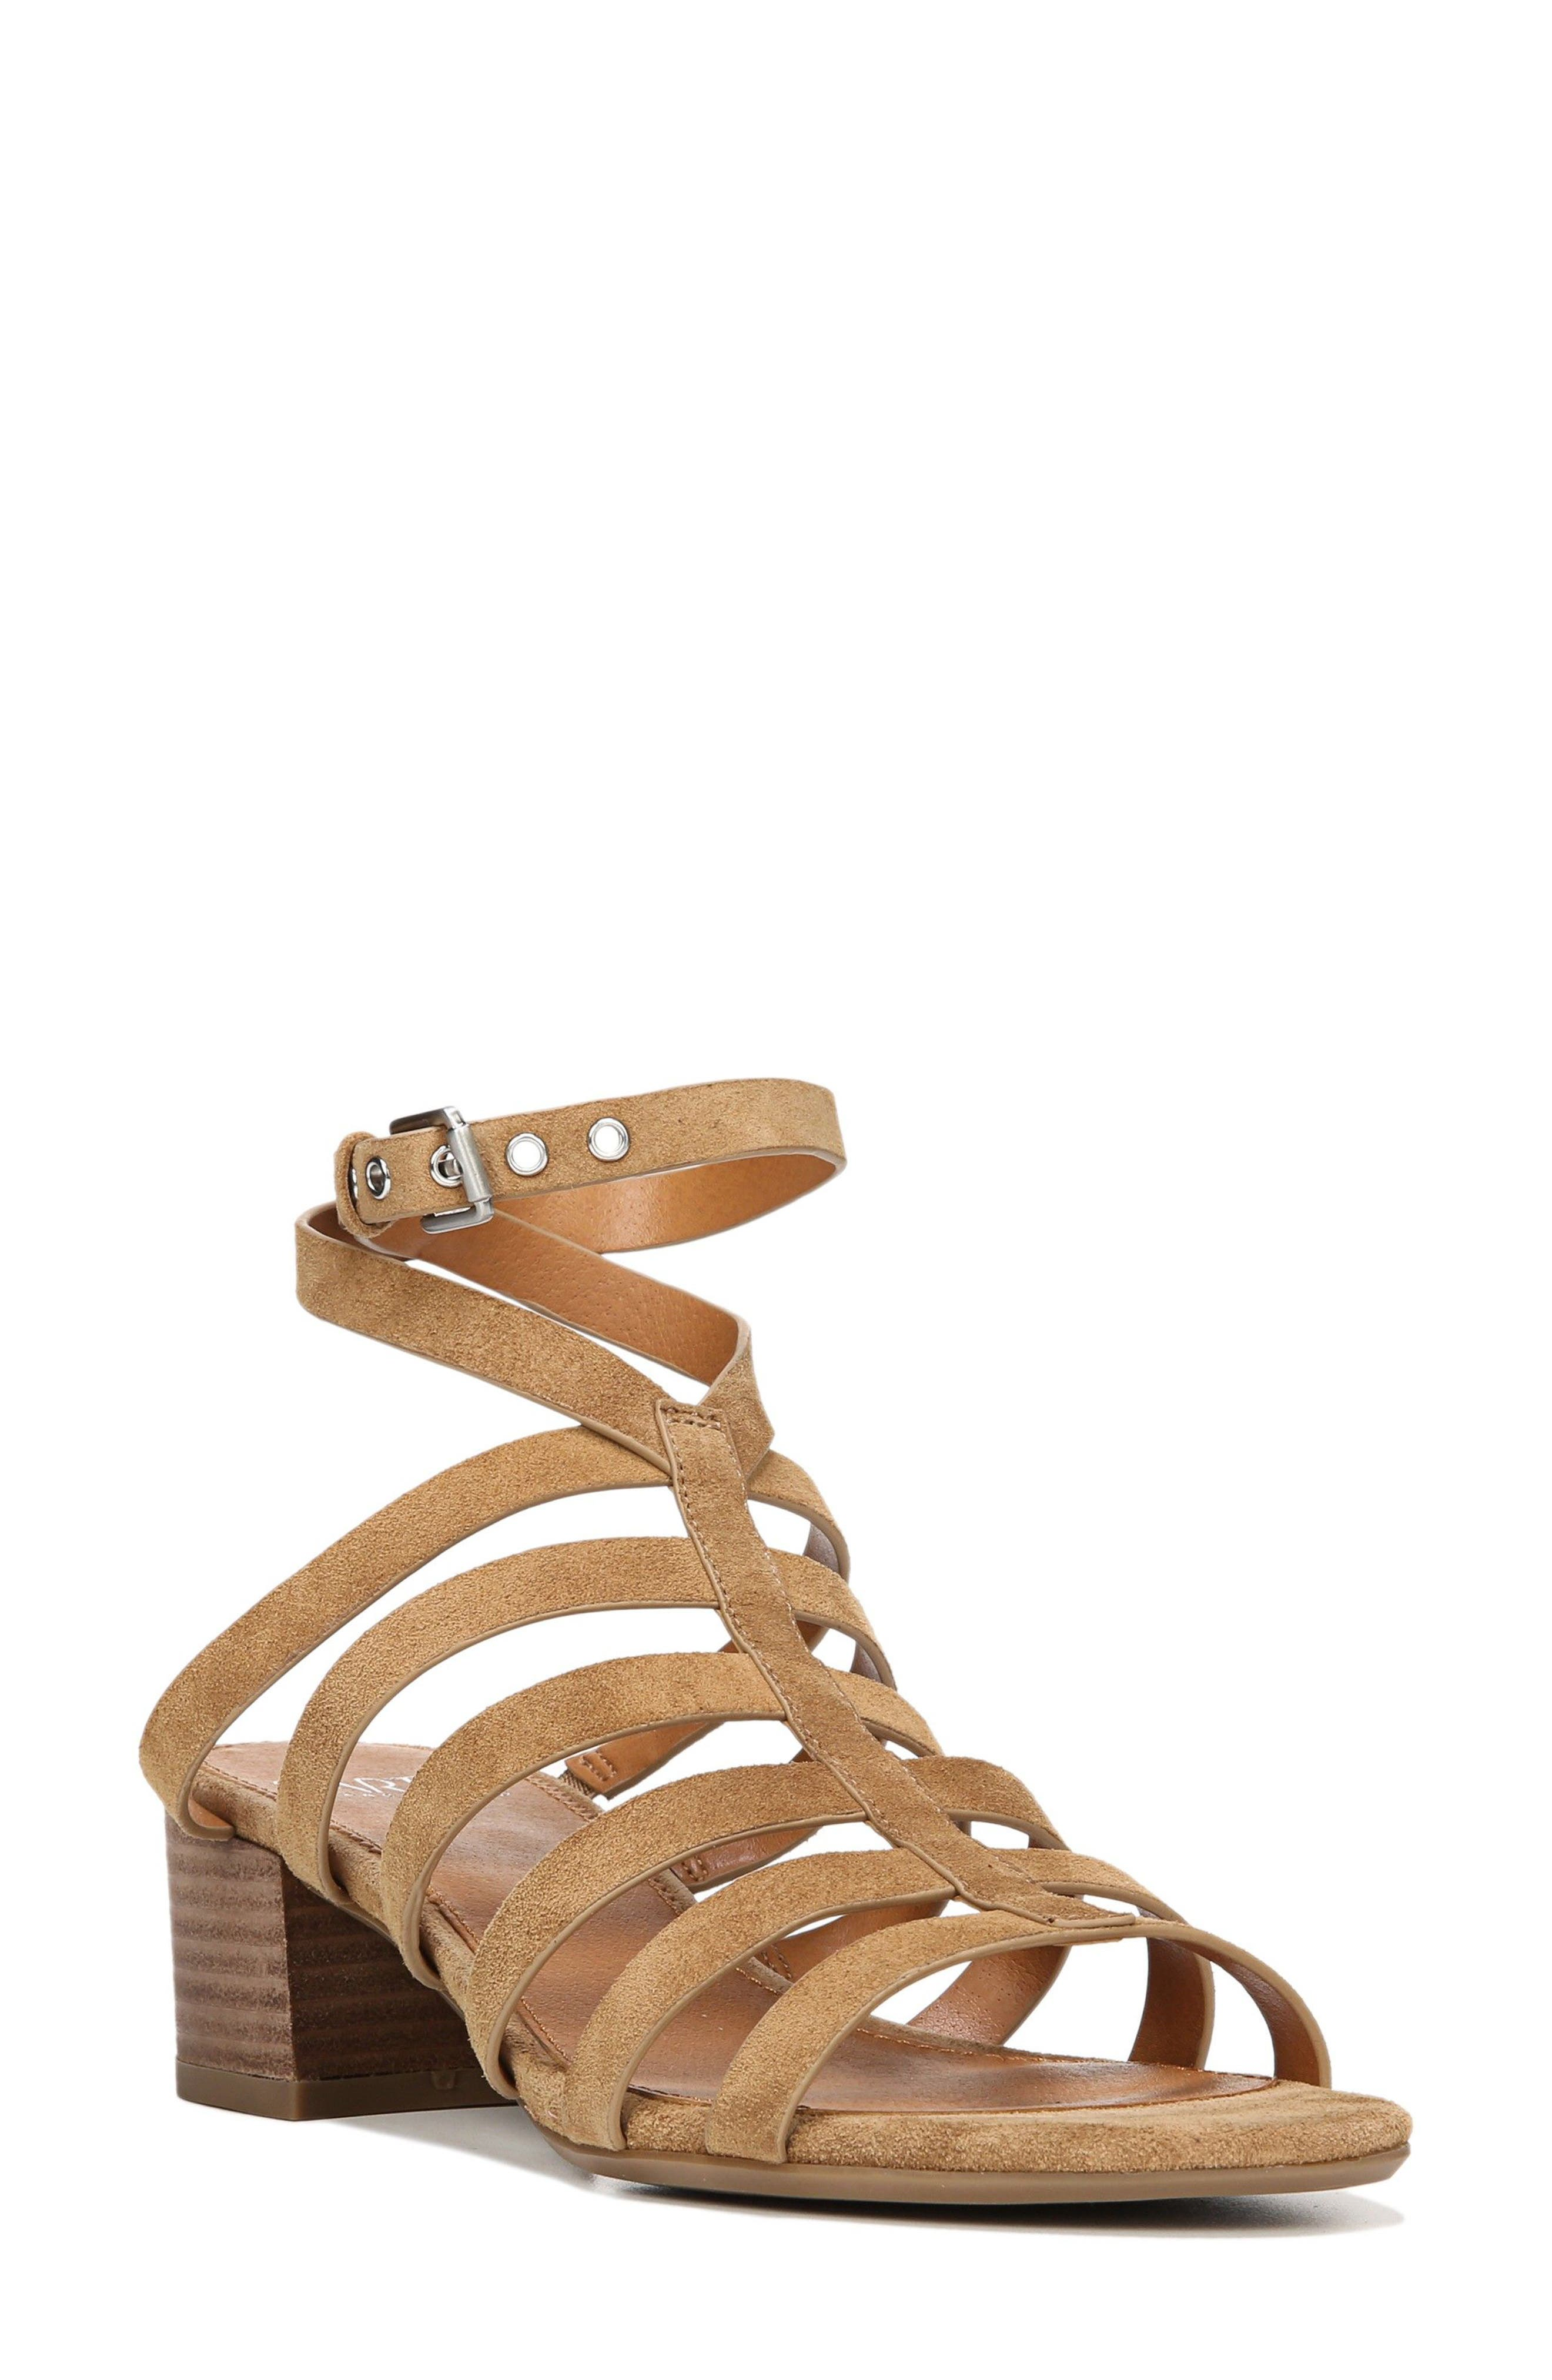 SARTO BY FRANCO SARTO Finesse Cage Sandal